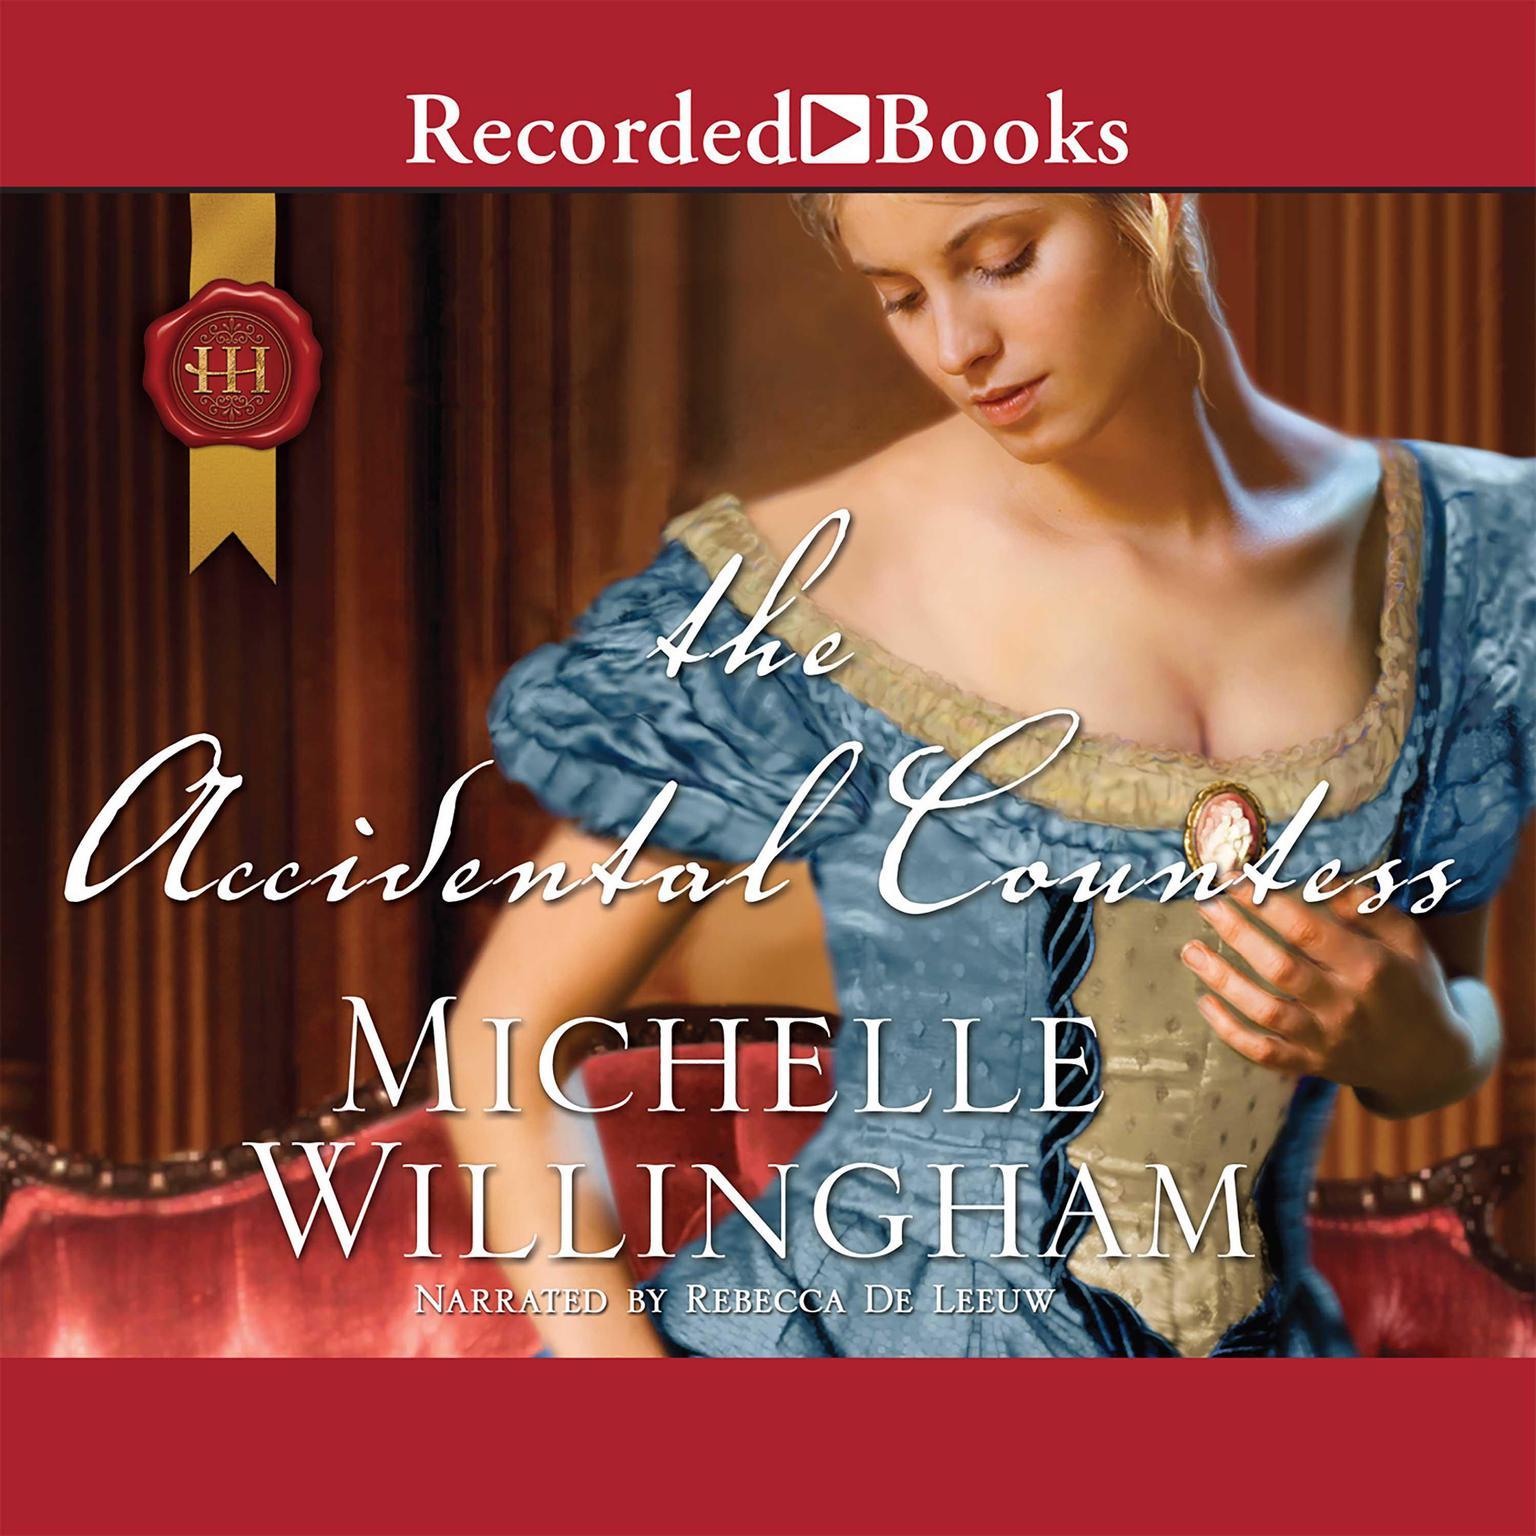 Printable The Accidental Countess Audiobook Cover Art